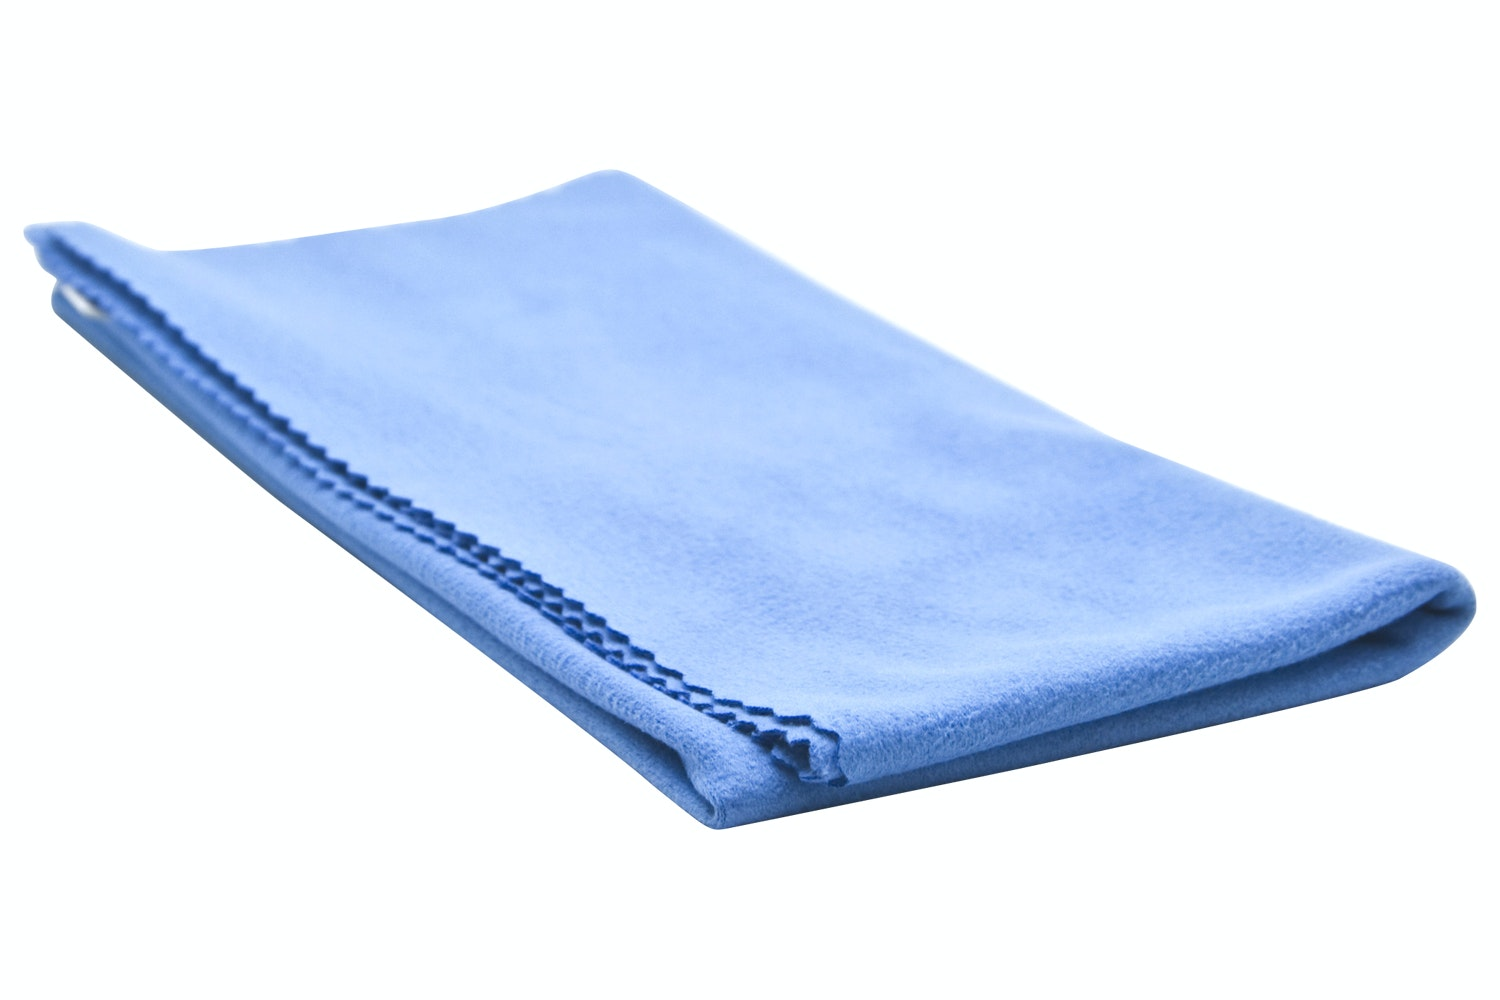 G&BL Micro Fiber Cleaning Cloth 40x40cm | Blue